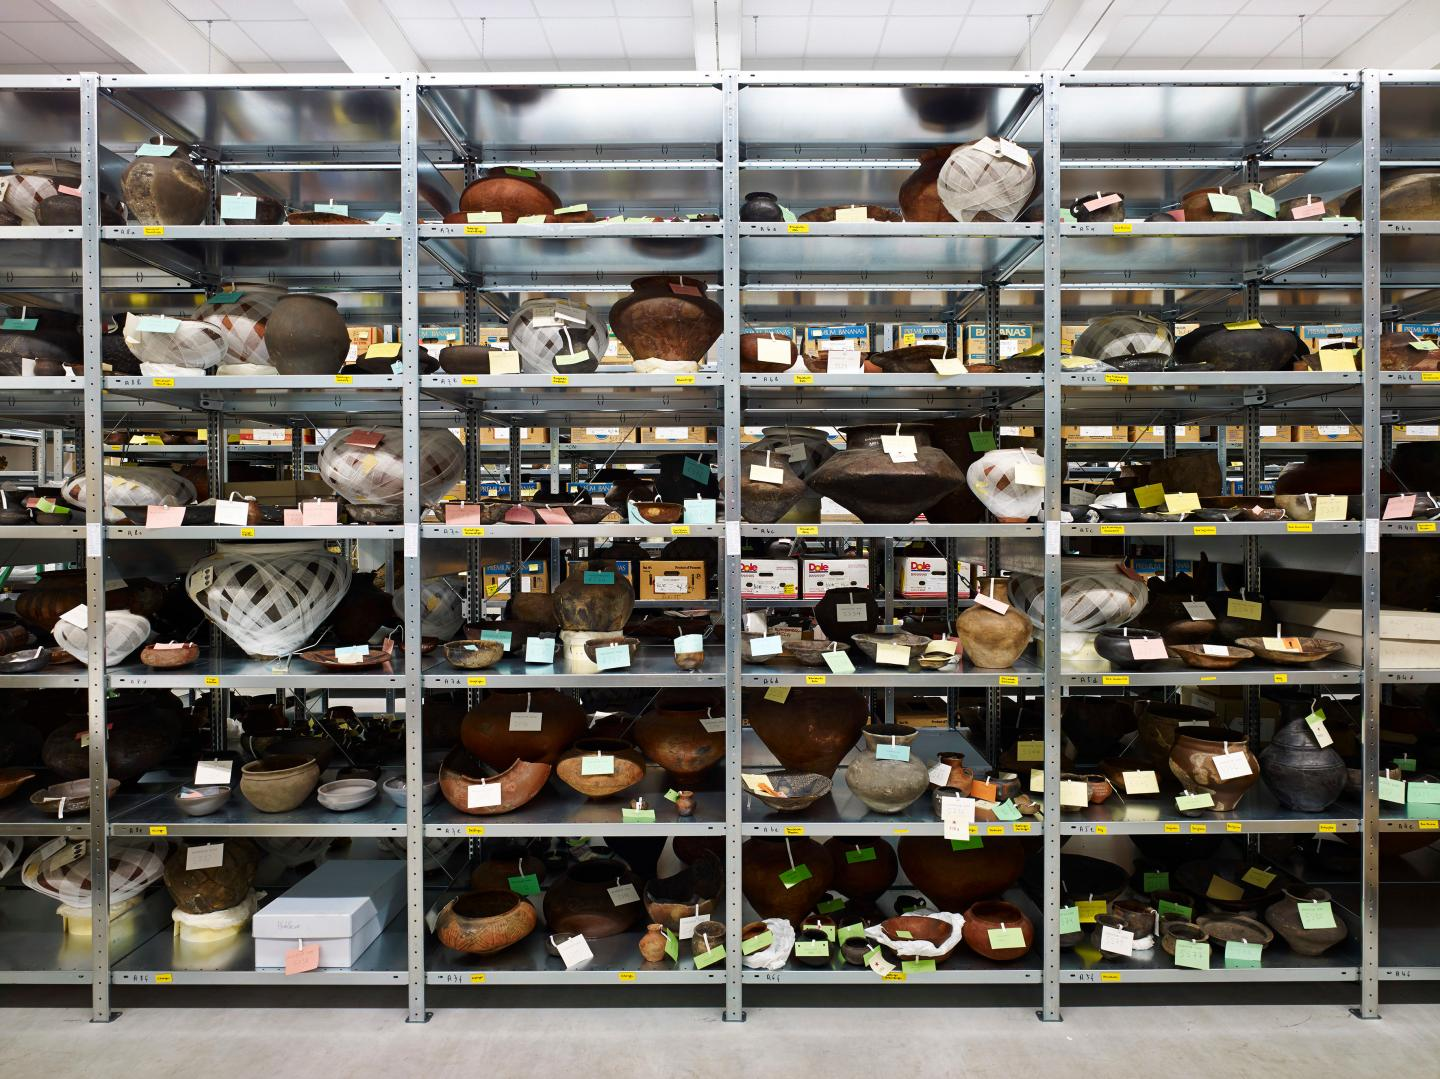 Picture of Shelves